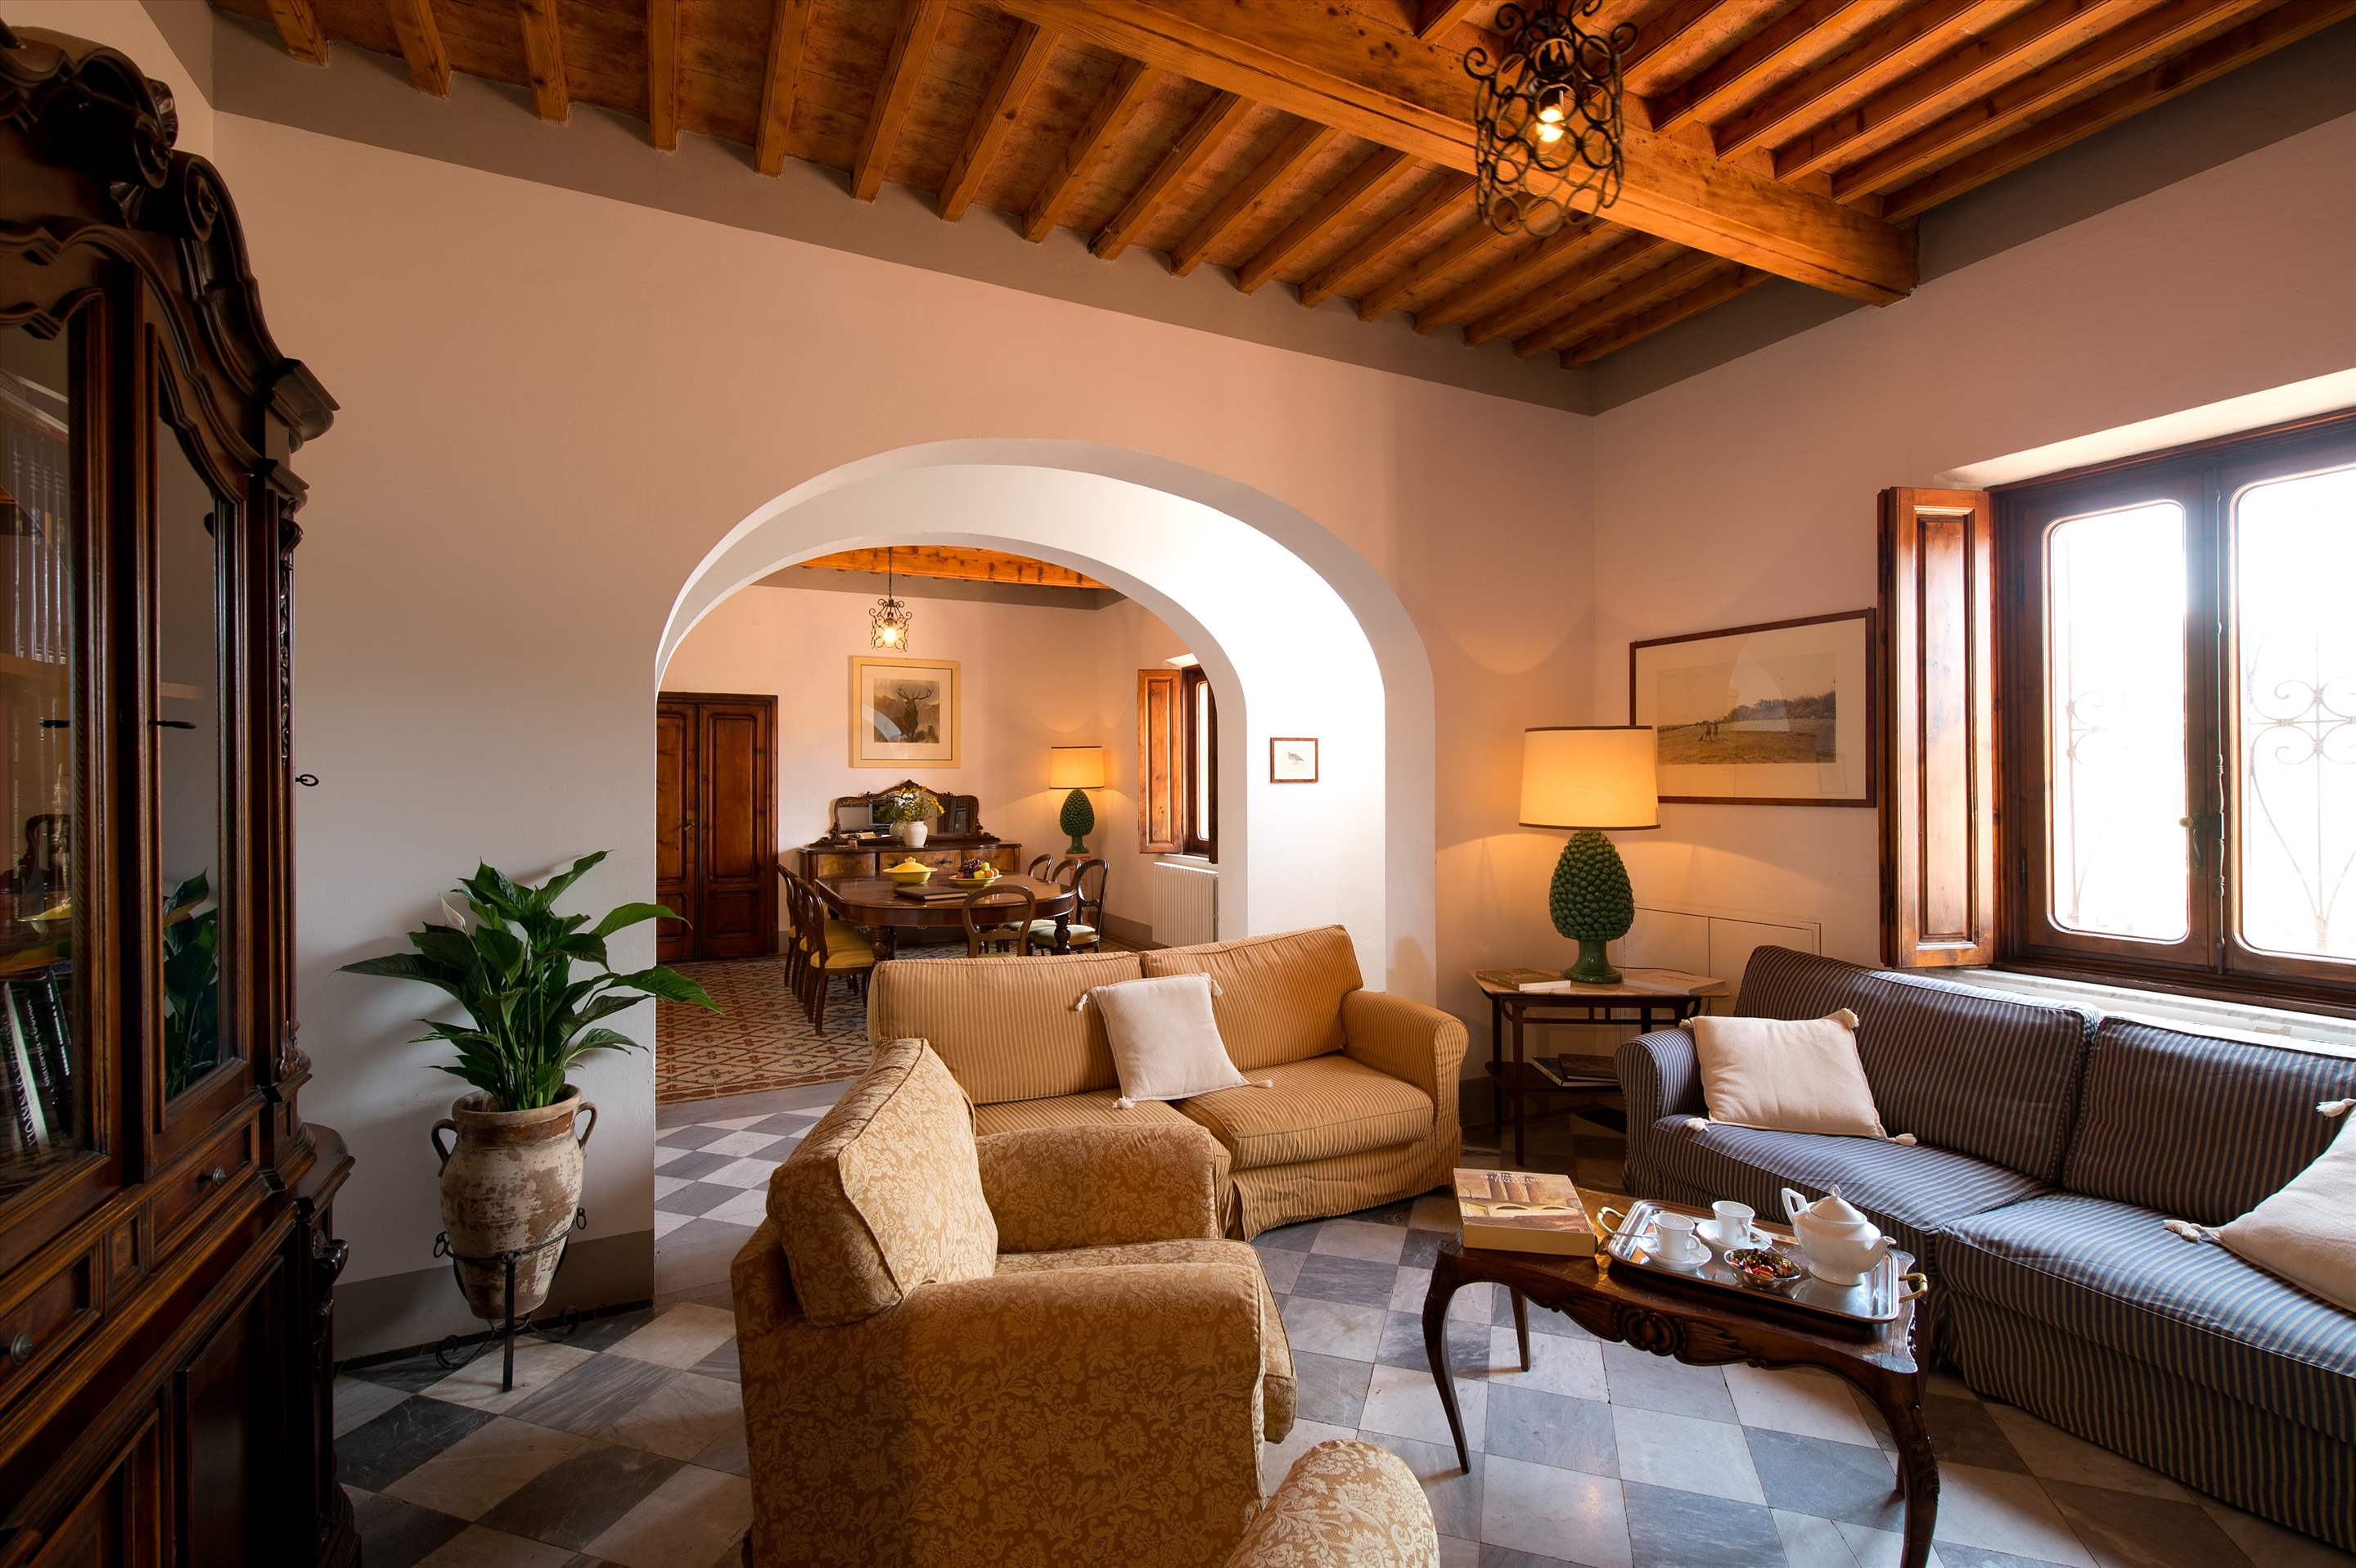 Villa Di Archi & Dependance, 9 bedroom villa in Tuscany Coast, Tuscany Photo #5